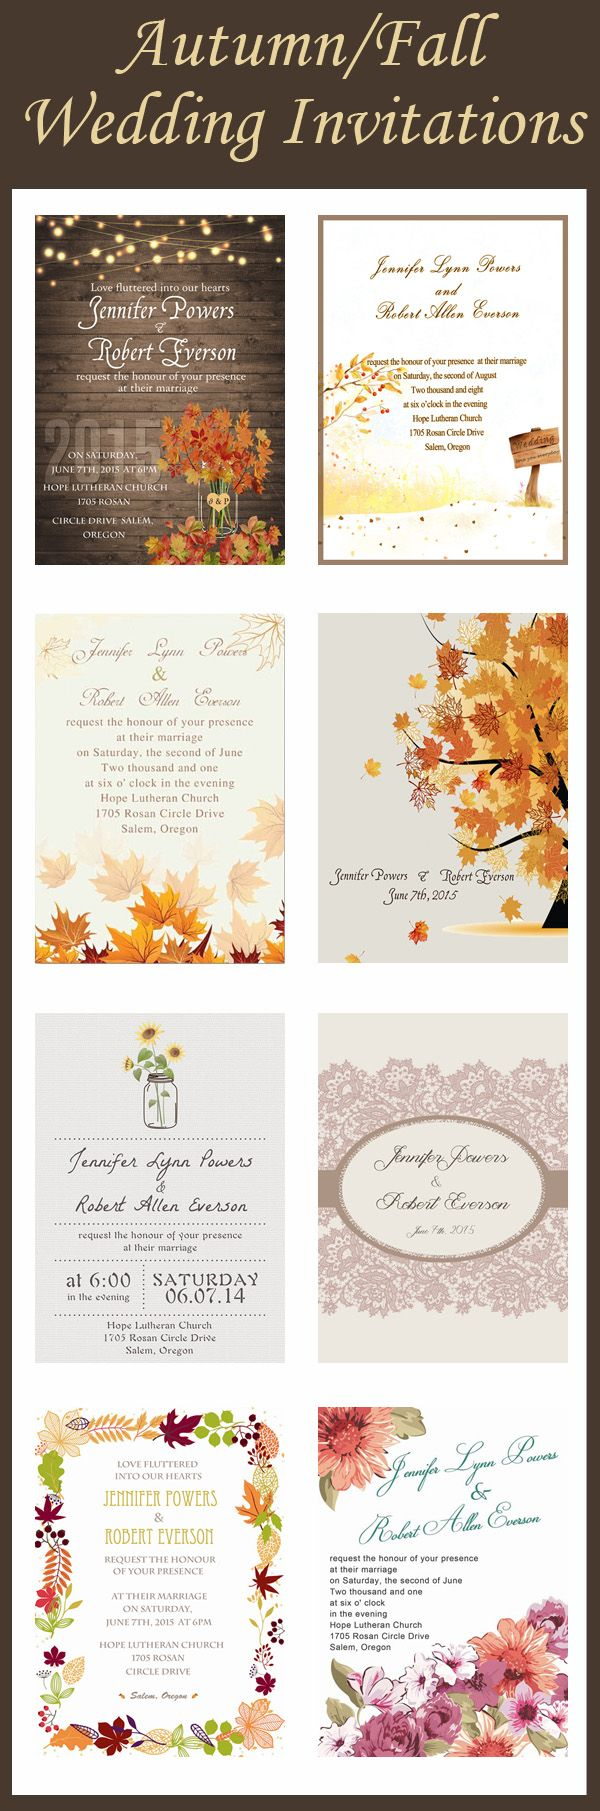 Fall in Love with Fall Inspired Wedding Invitations | Pinterest ...